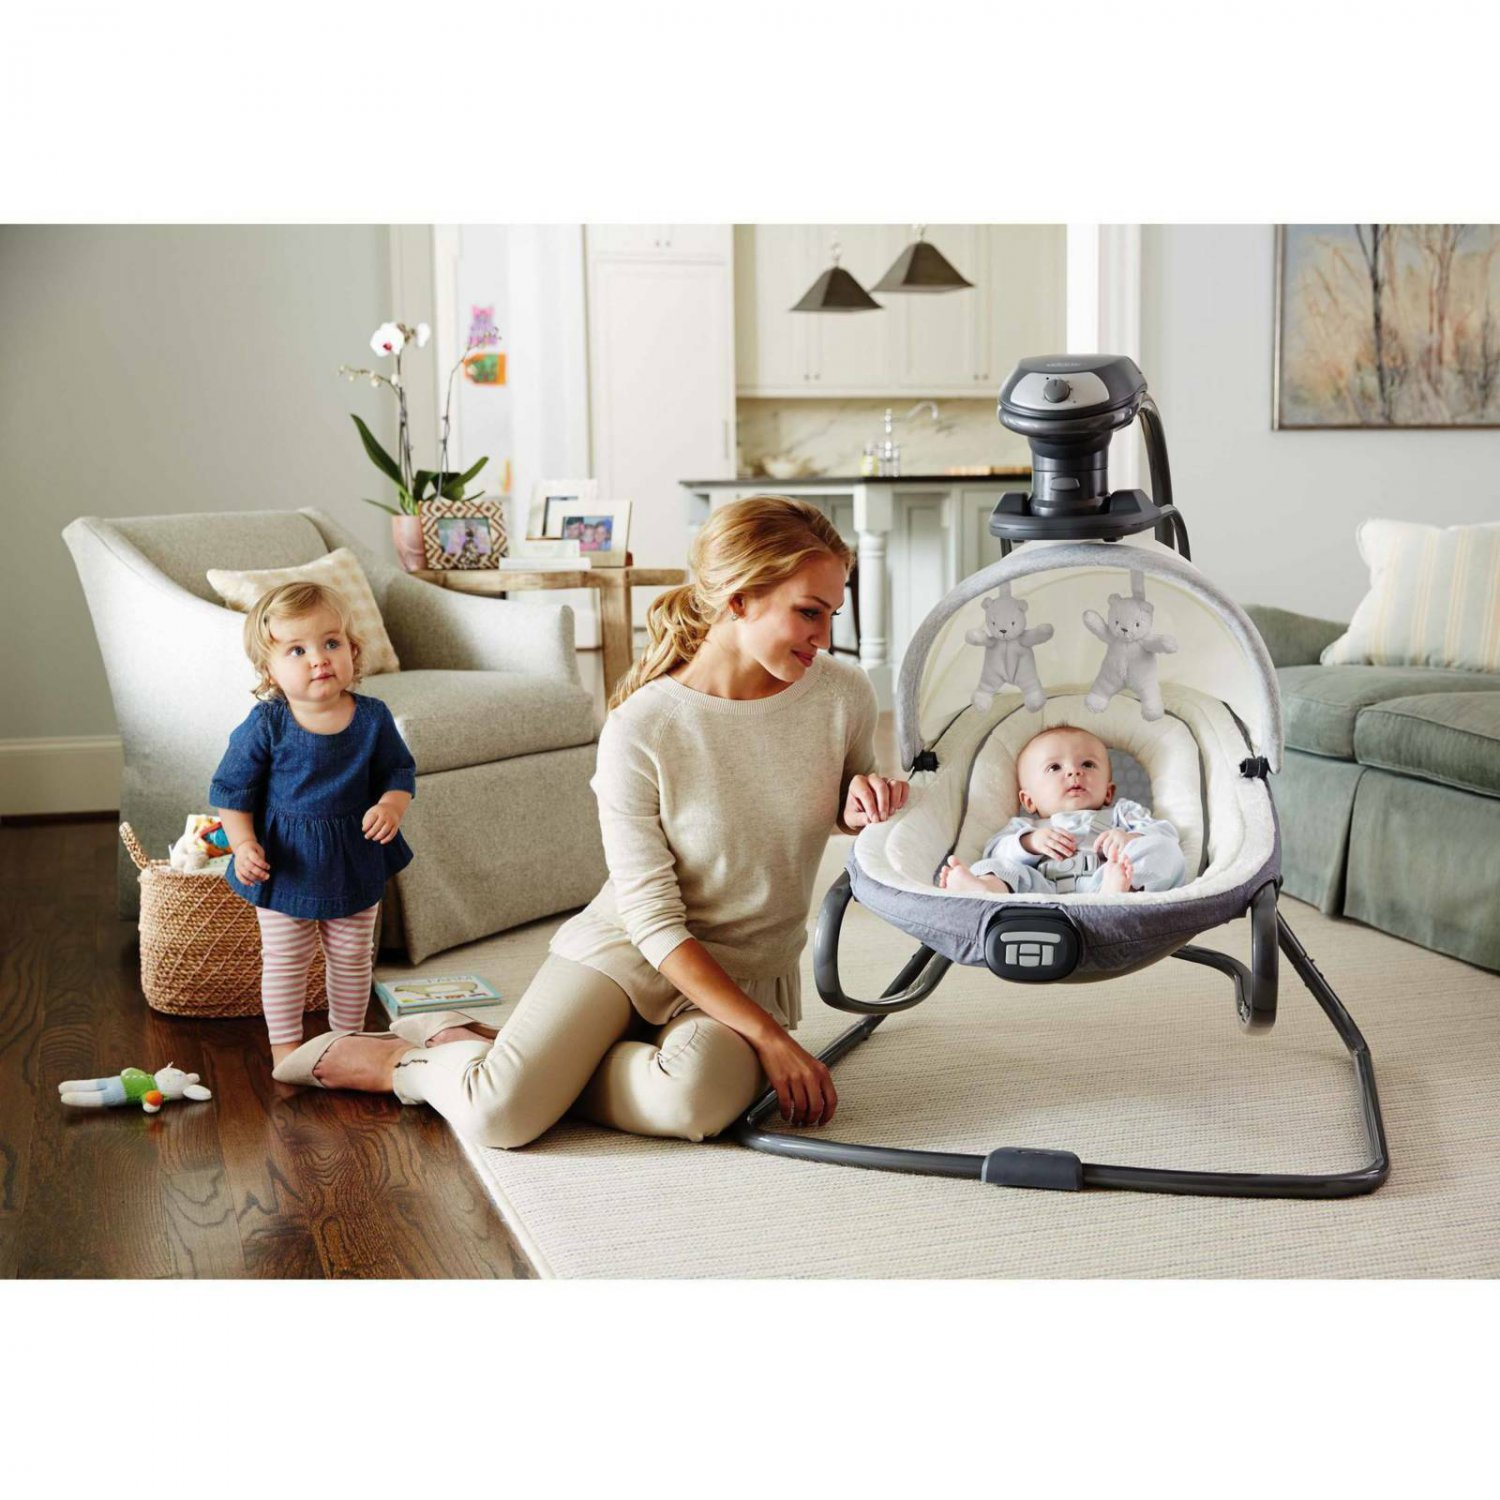 Graco Duet Oasis Baby Swing with Soothe Surround Technology, Davis